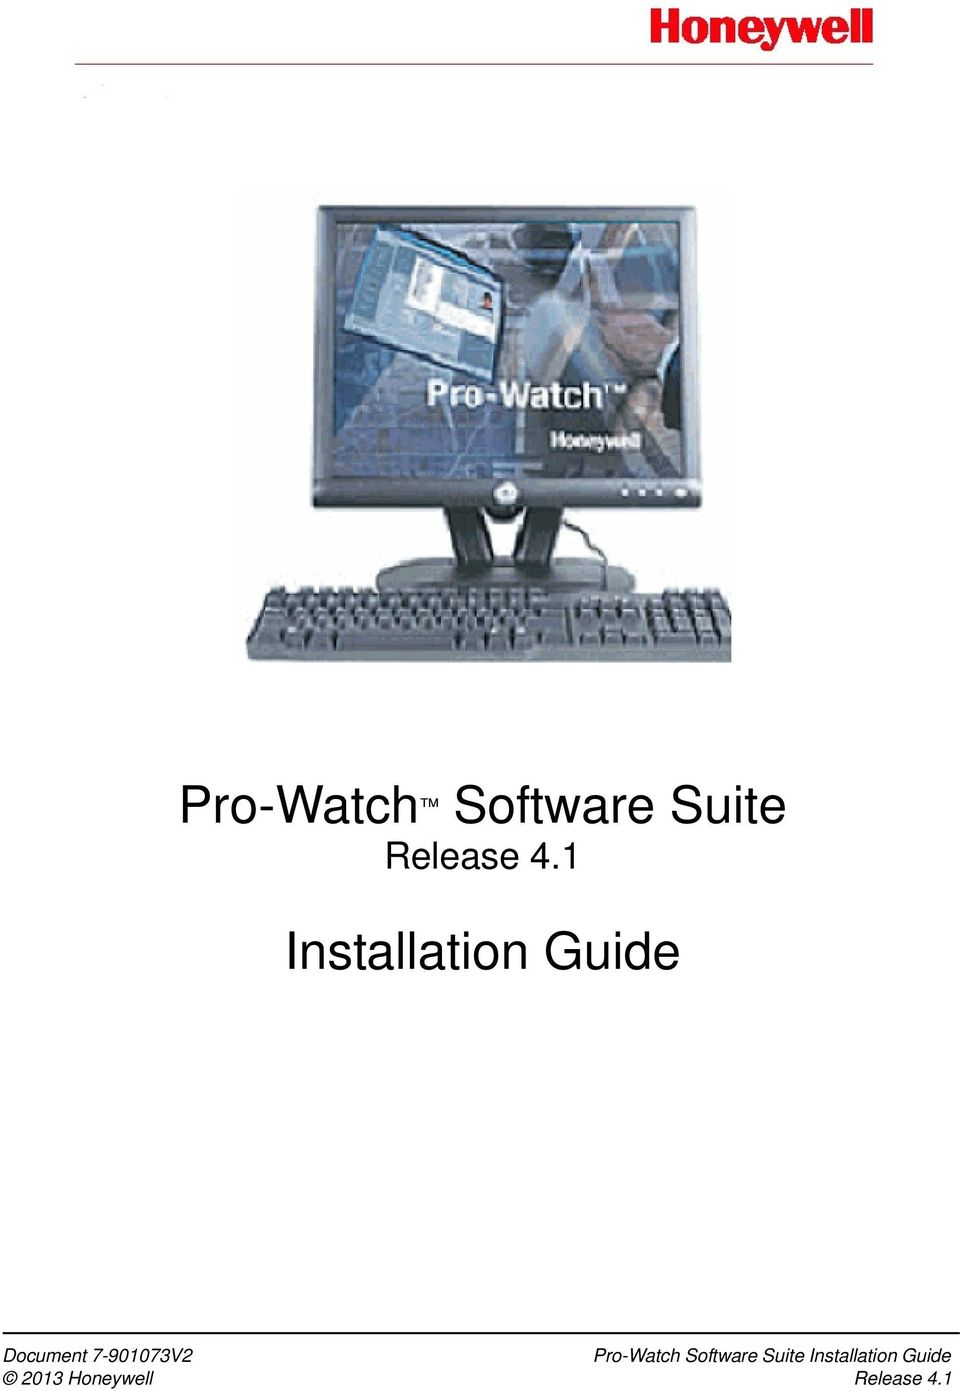 7-901073V2 Pro-Watch Software Suite